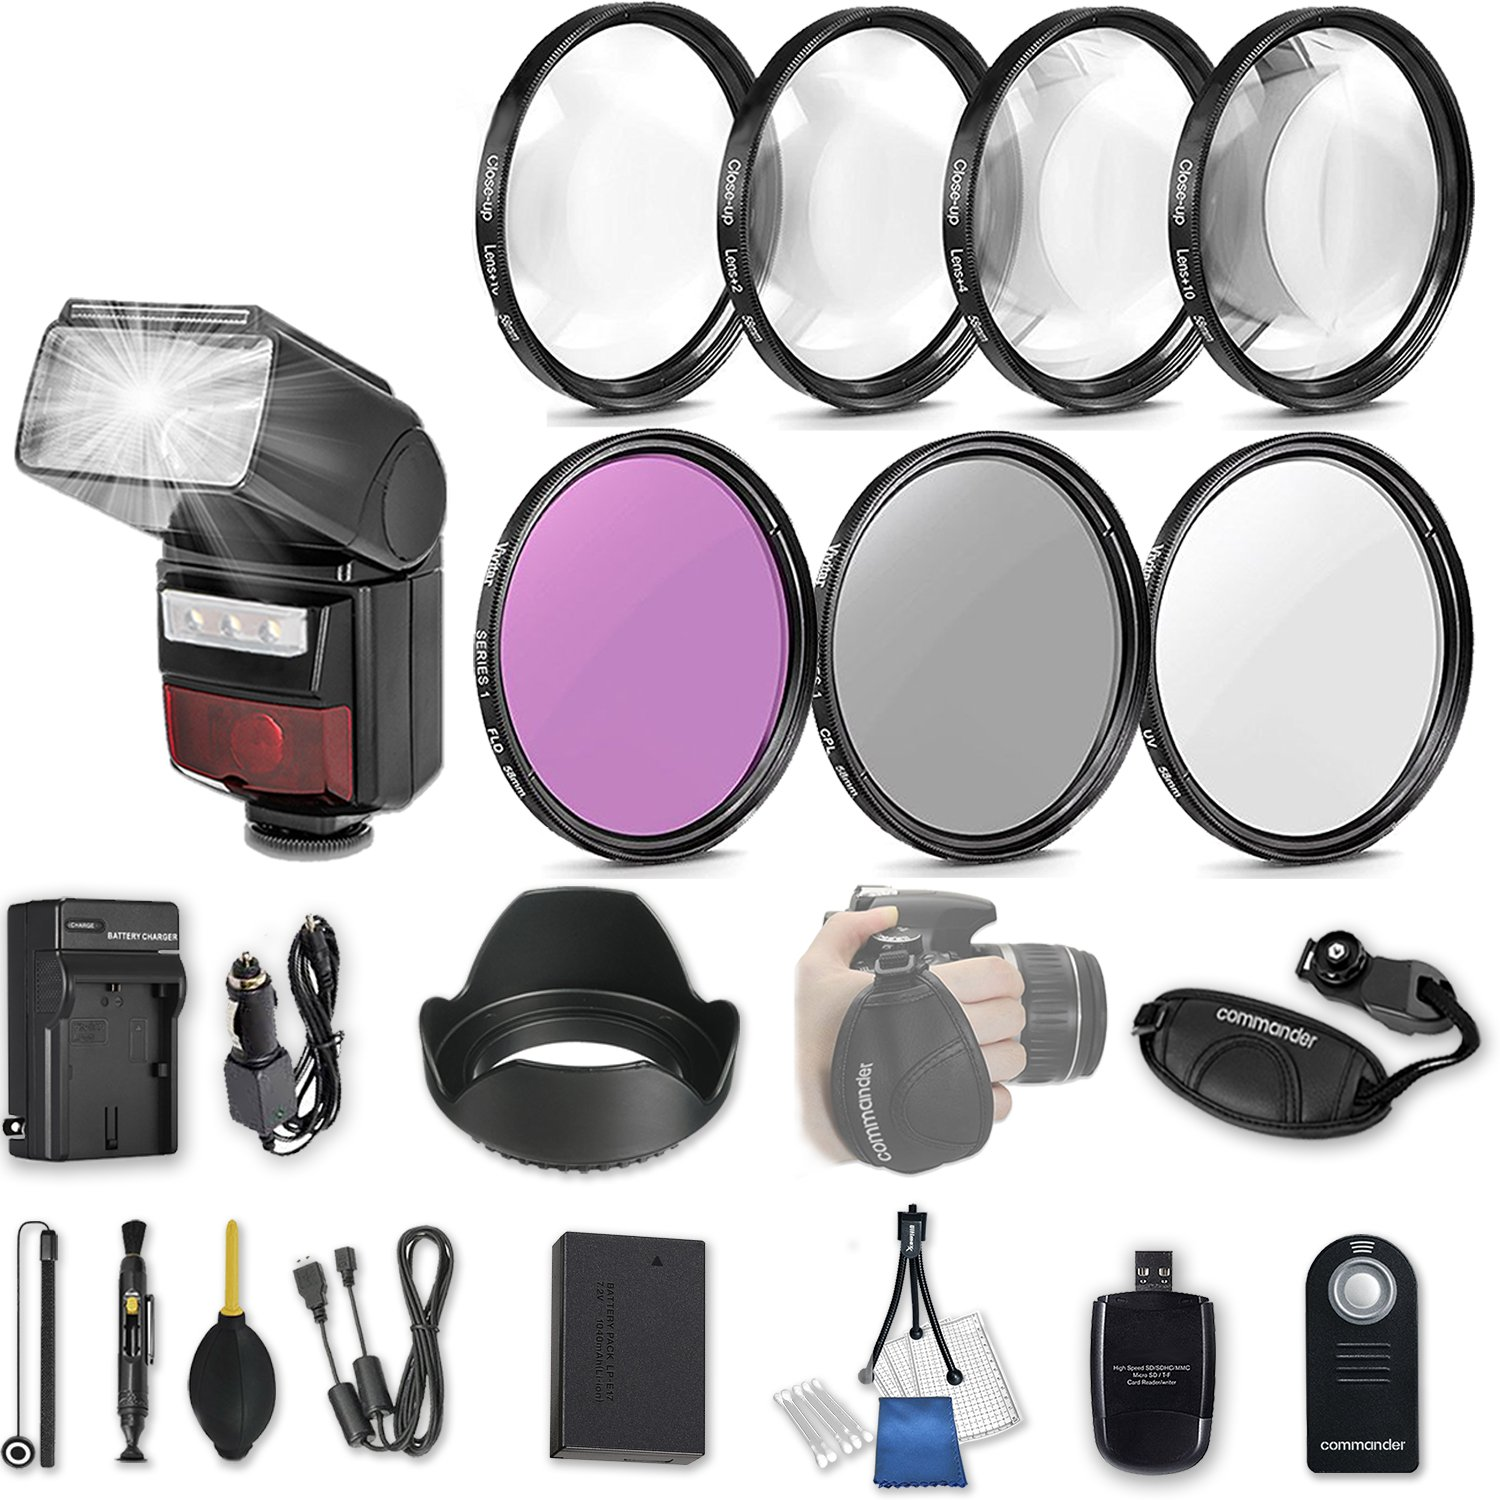 58mm 21 Pc Accessory Kit for Canon EOS Rebel SL2, 200D DSLR with LED-Flash, UV CPL FLD Filters, & 4 Piece Macro Close-Up Set, Battery, and More by 33rd Street